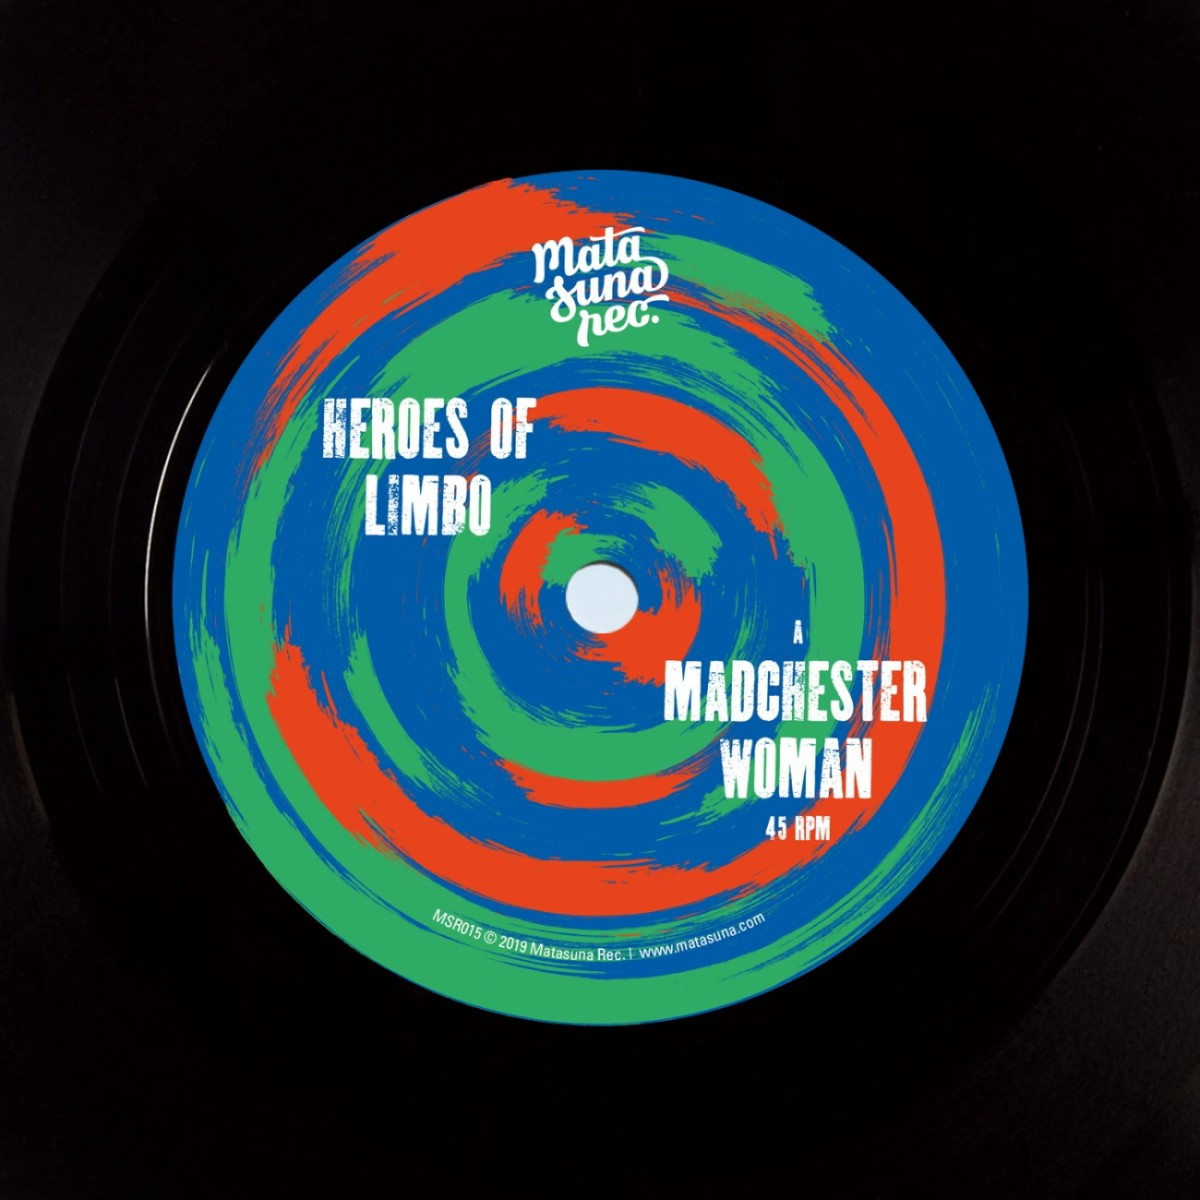 Madchester Woman - Heroes of Limbo